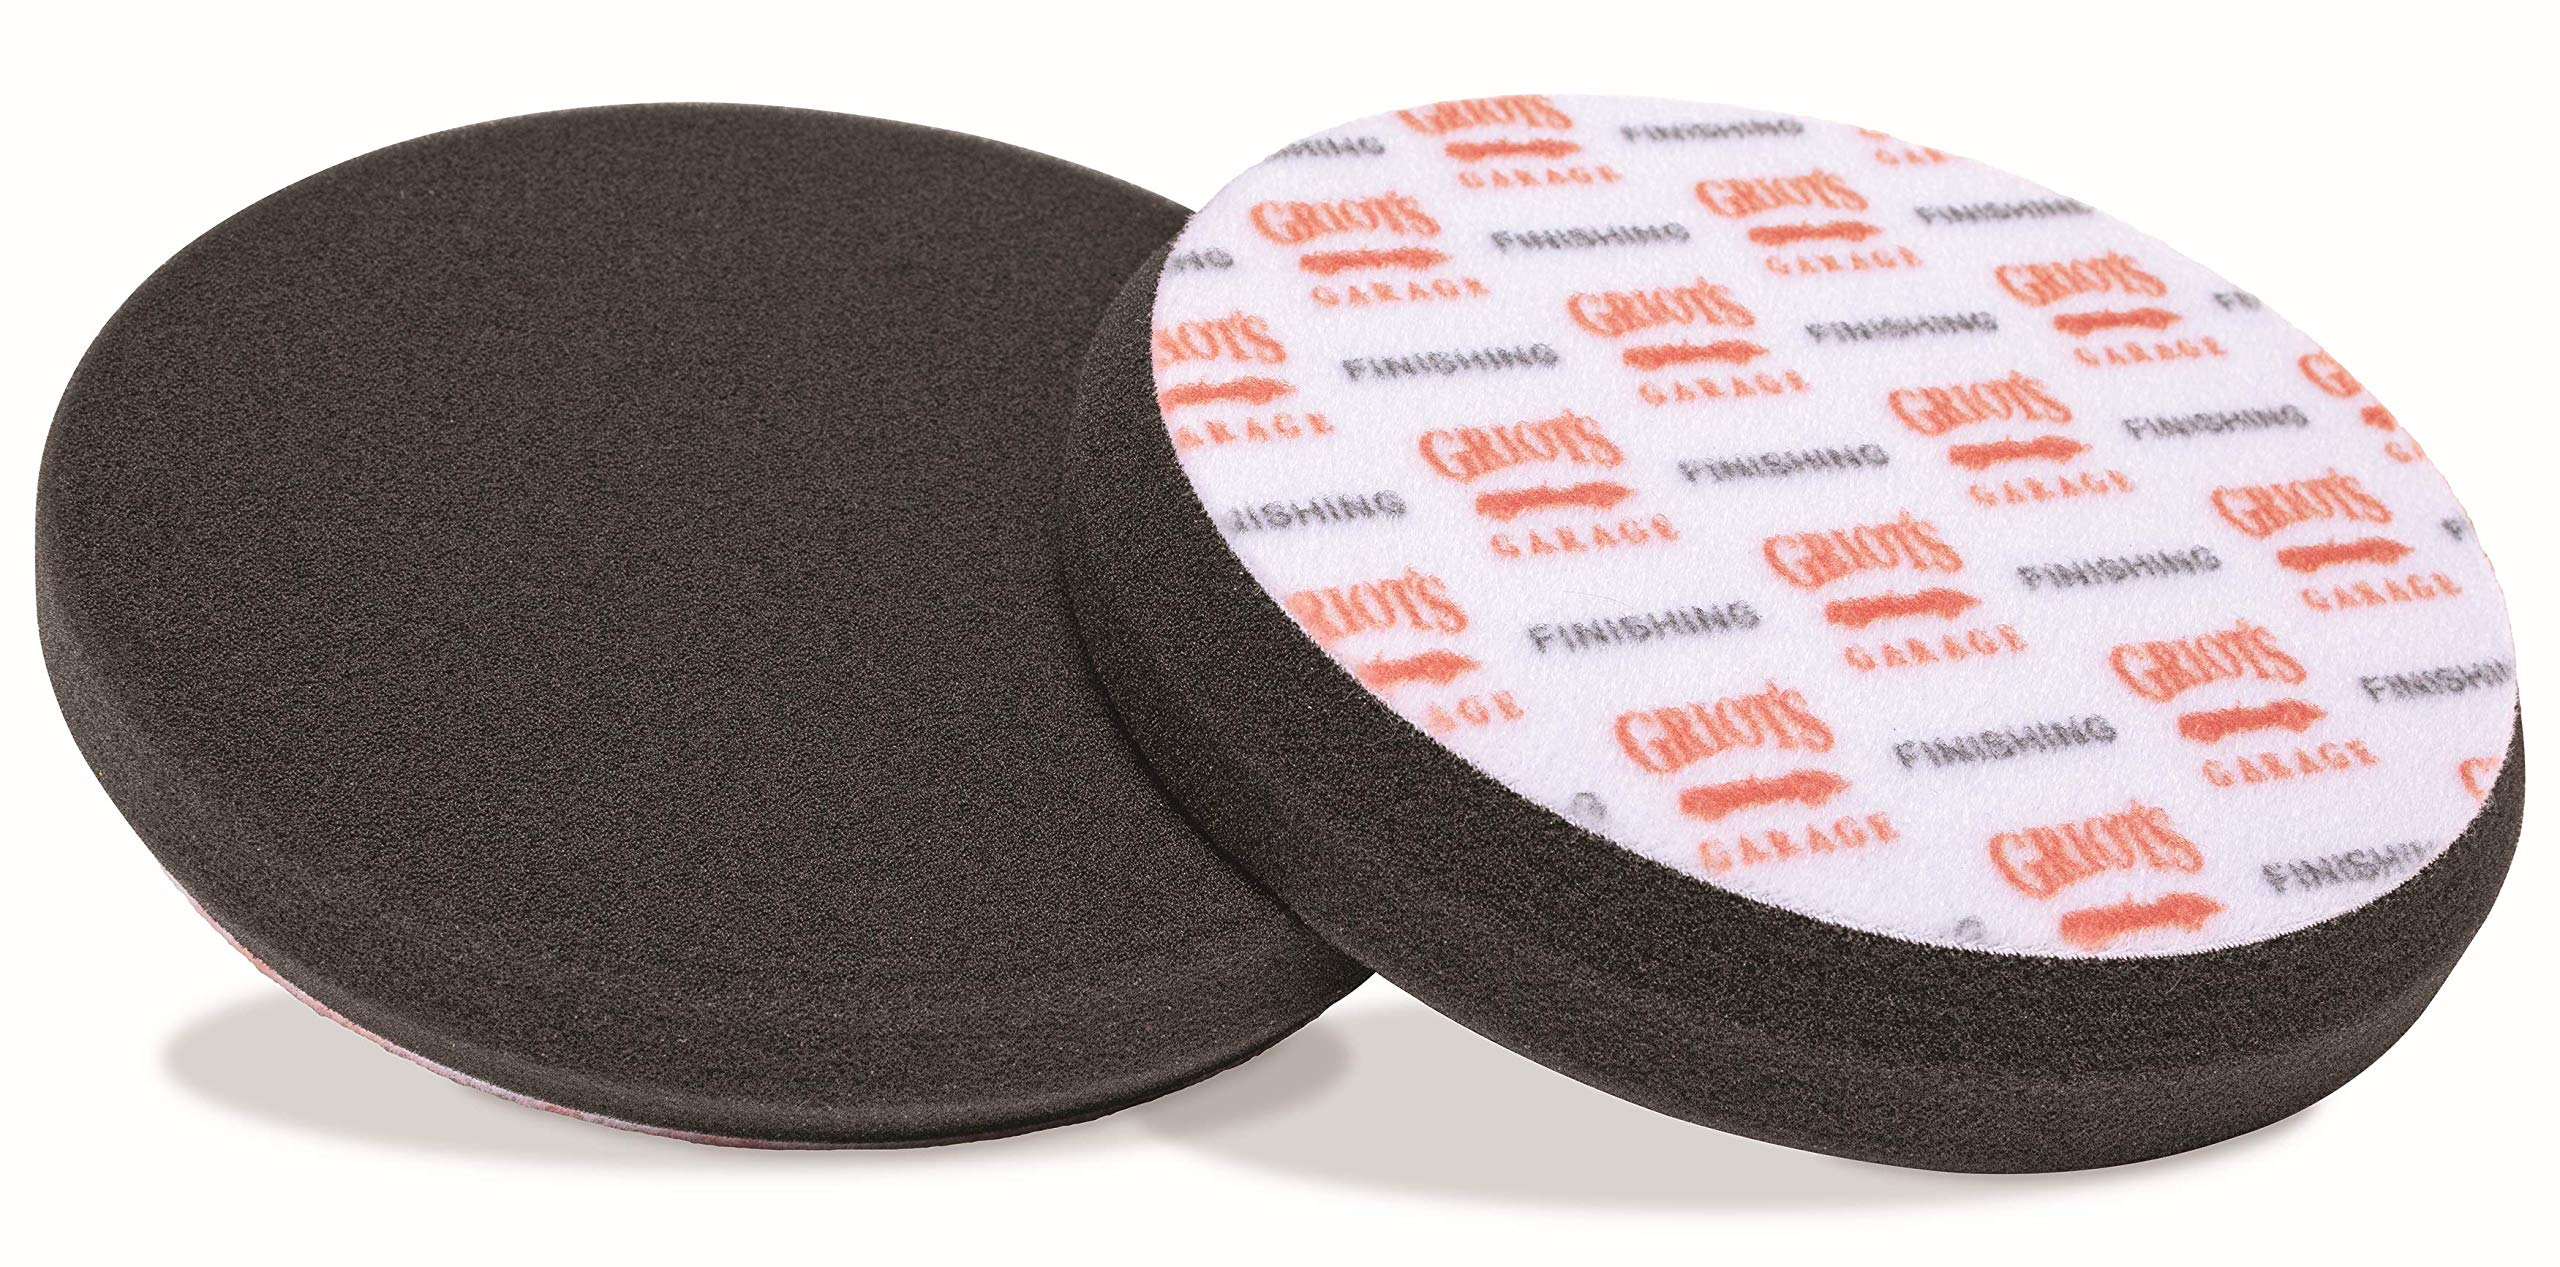 Set of 2 Griots Garage 10525 5.5 Red Foam Waxing Pads